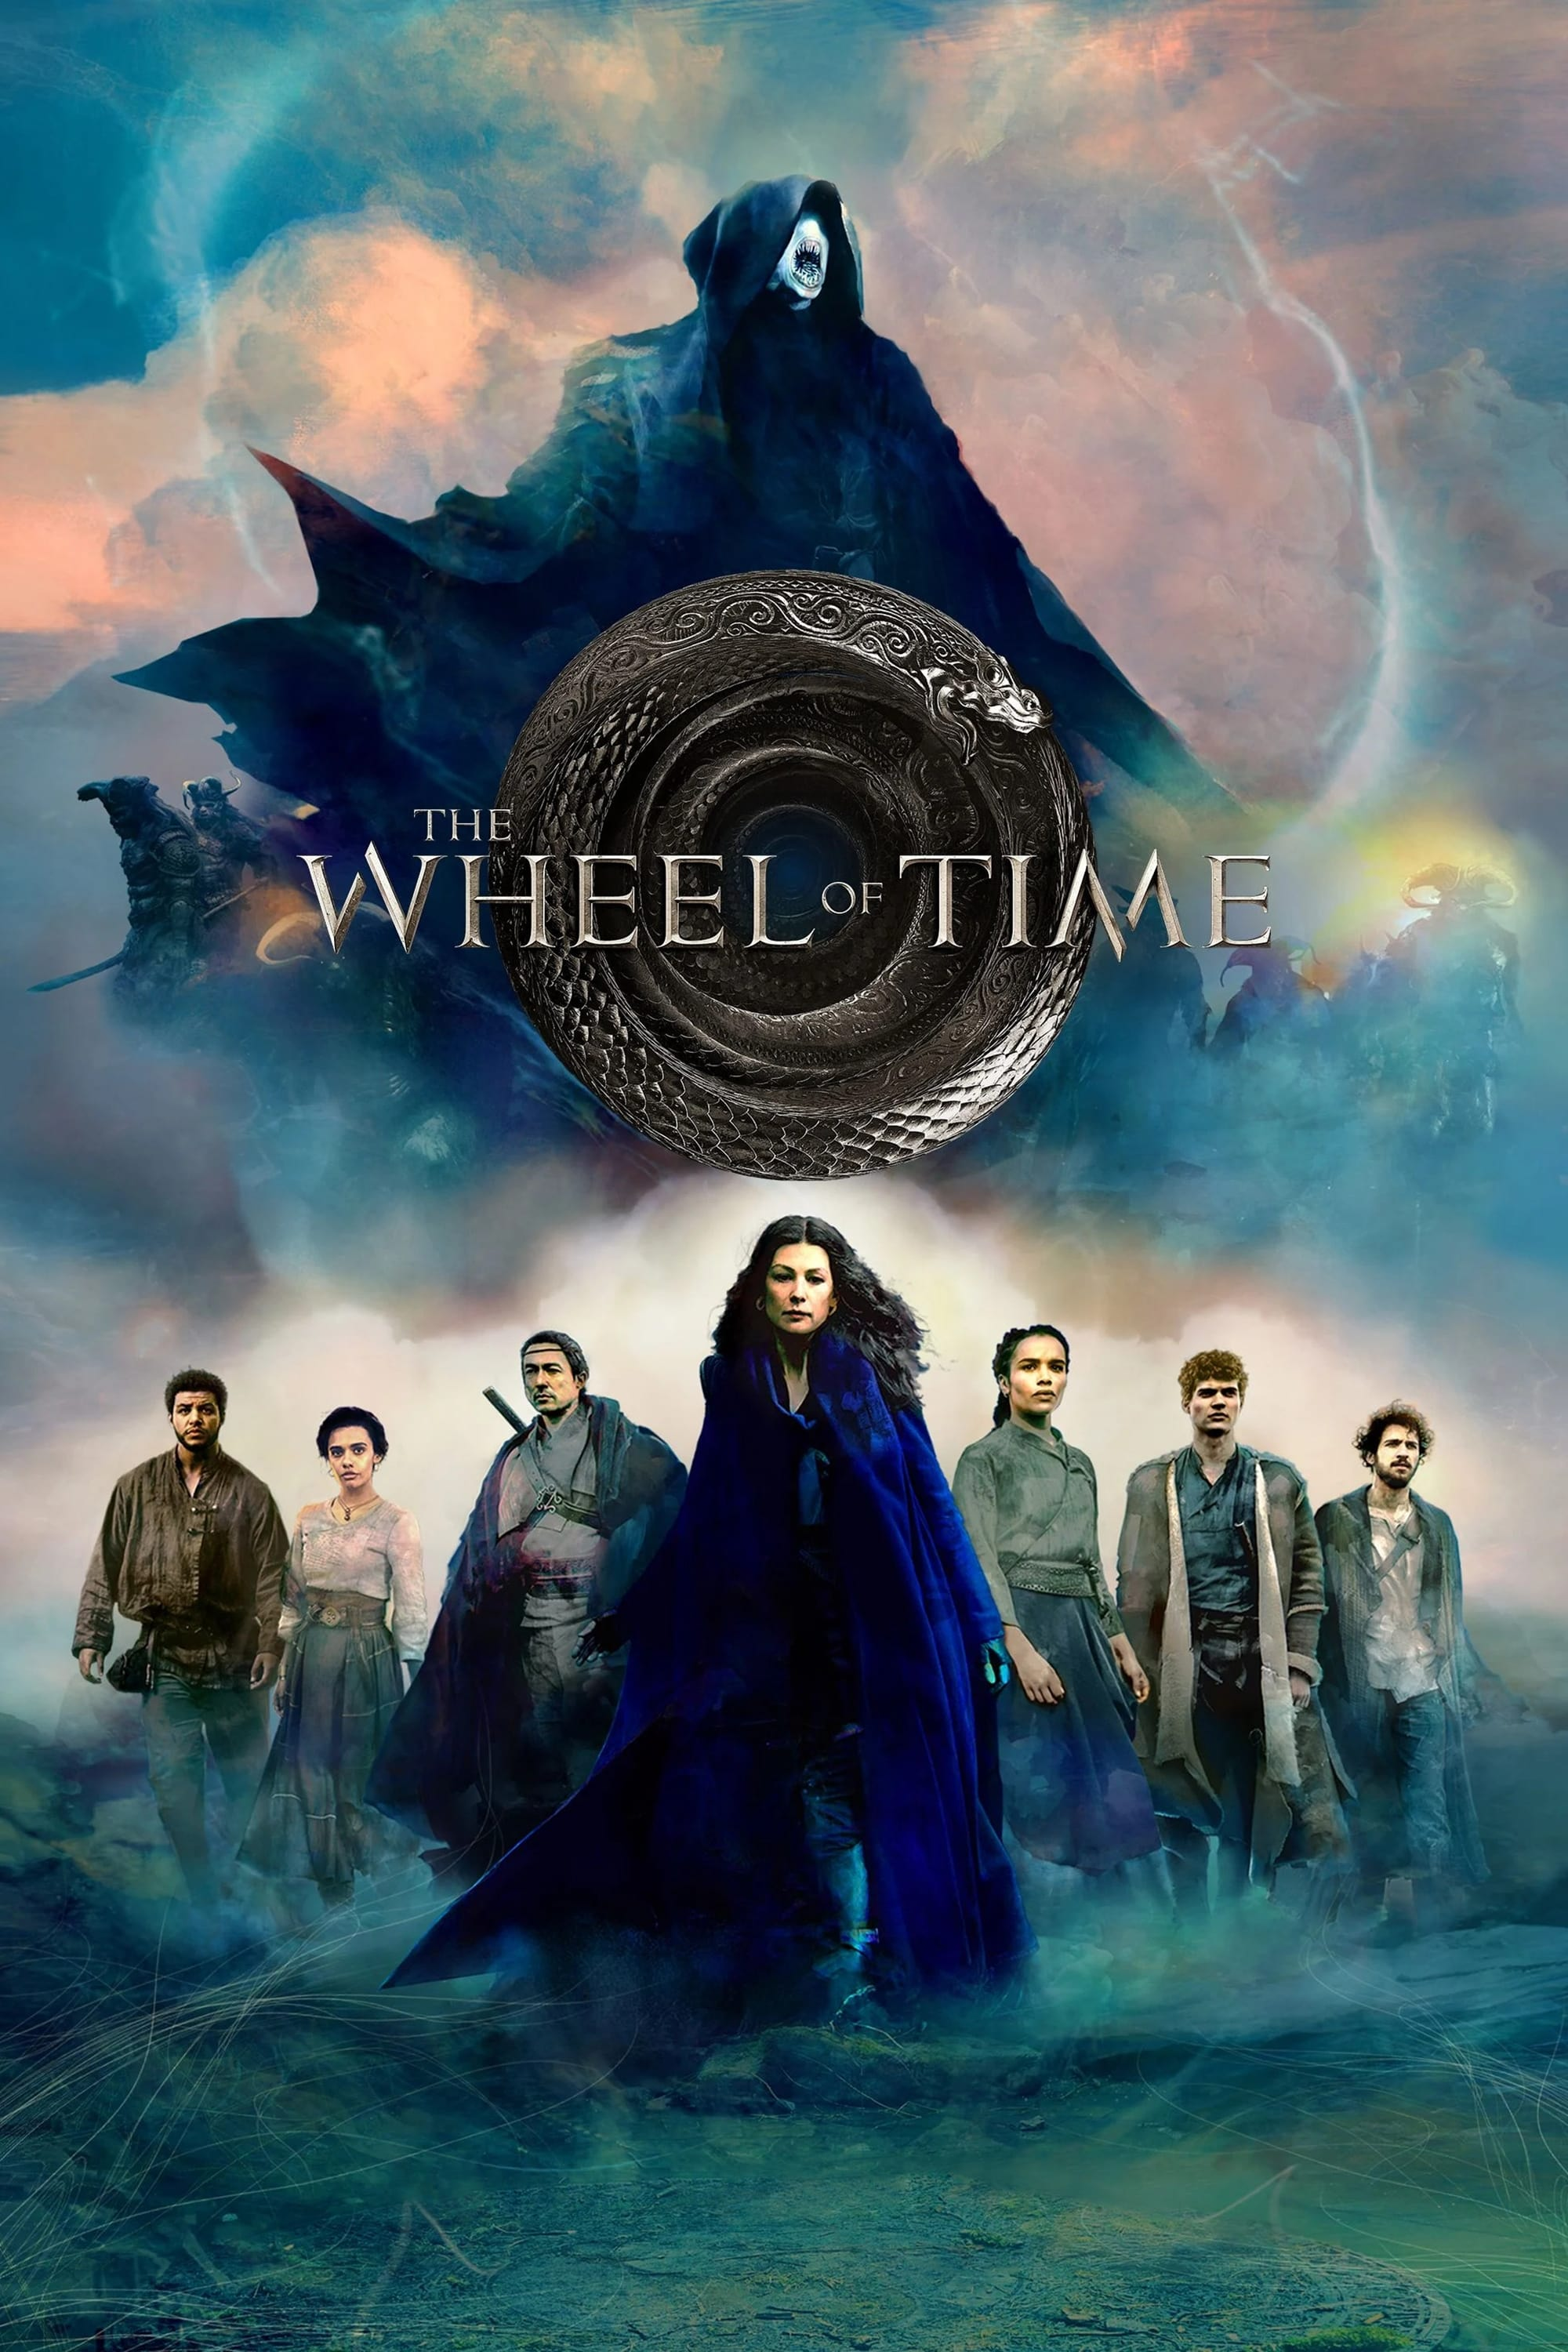 The Wheel of Time TV Shows About Based On Novel Or Book